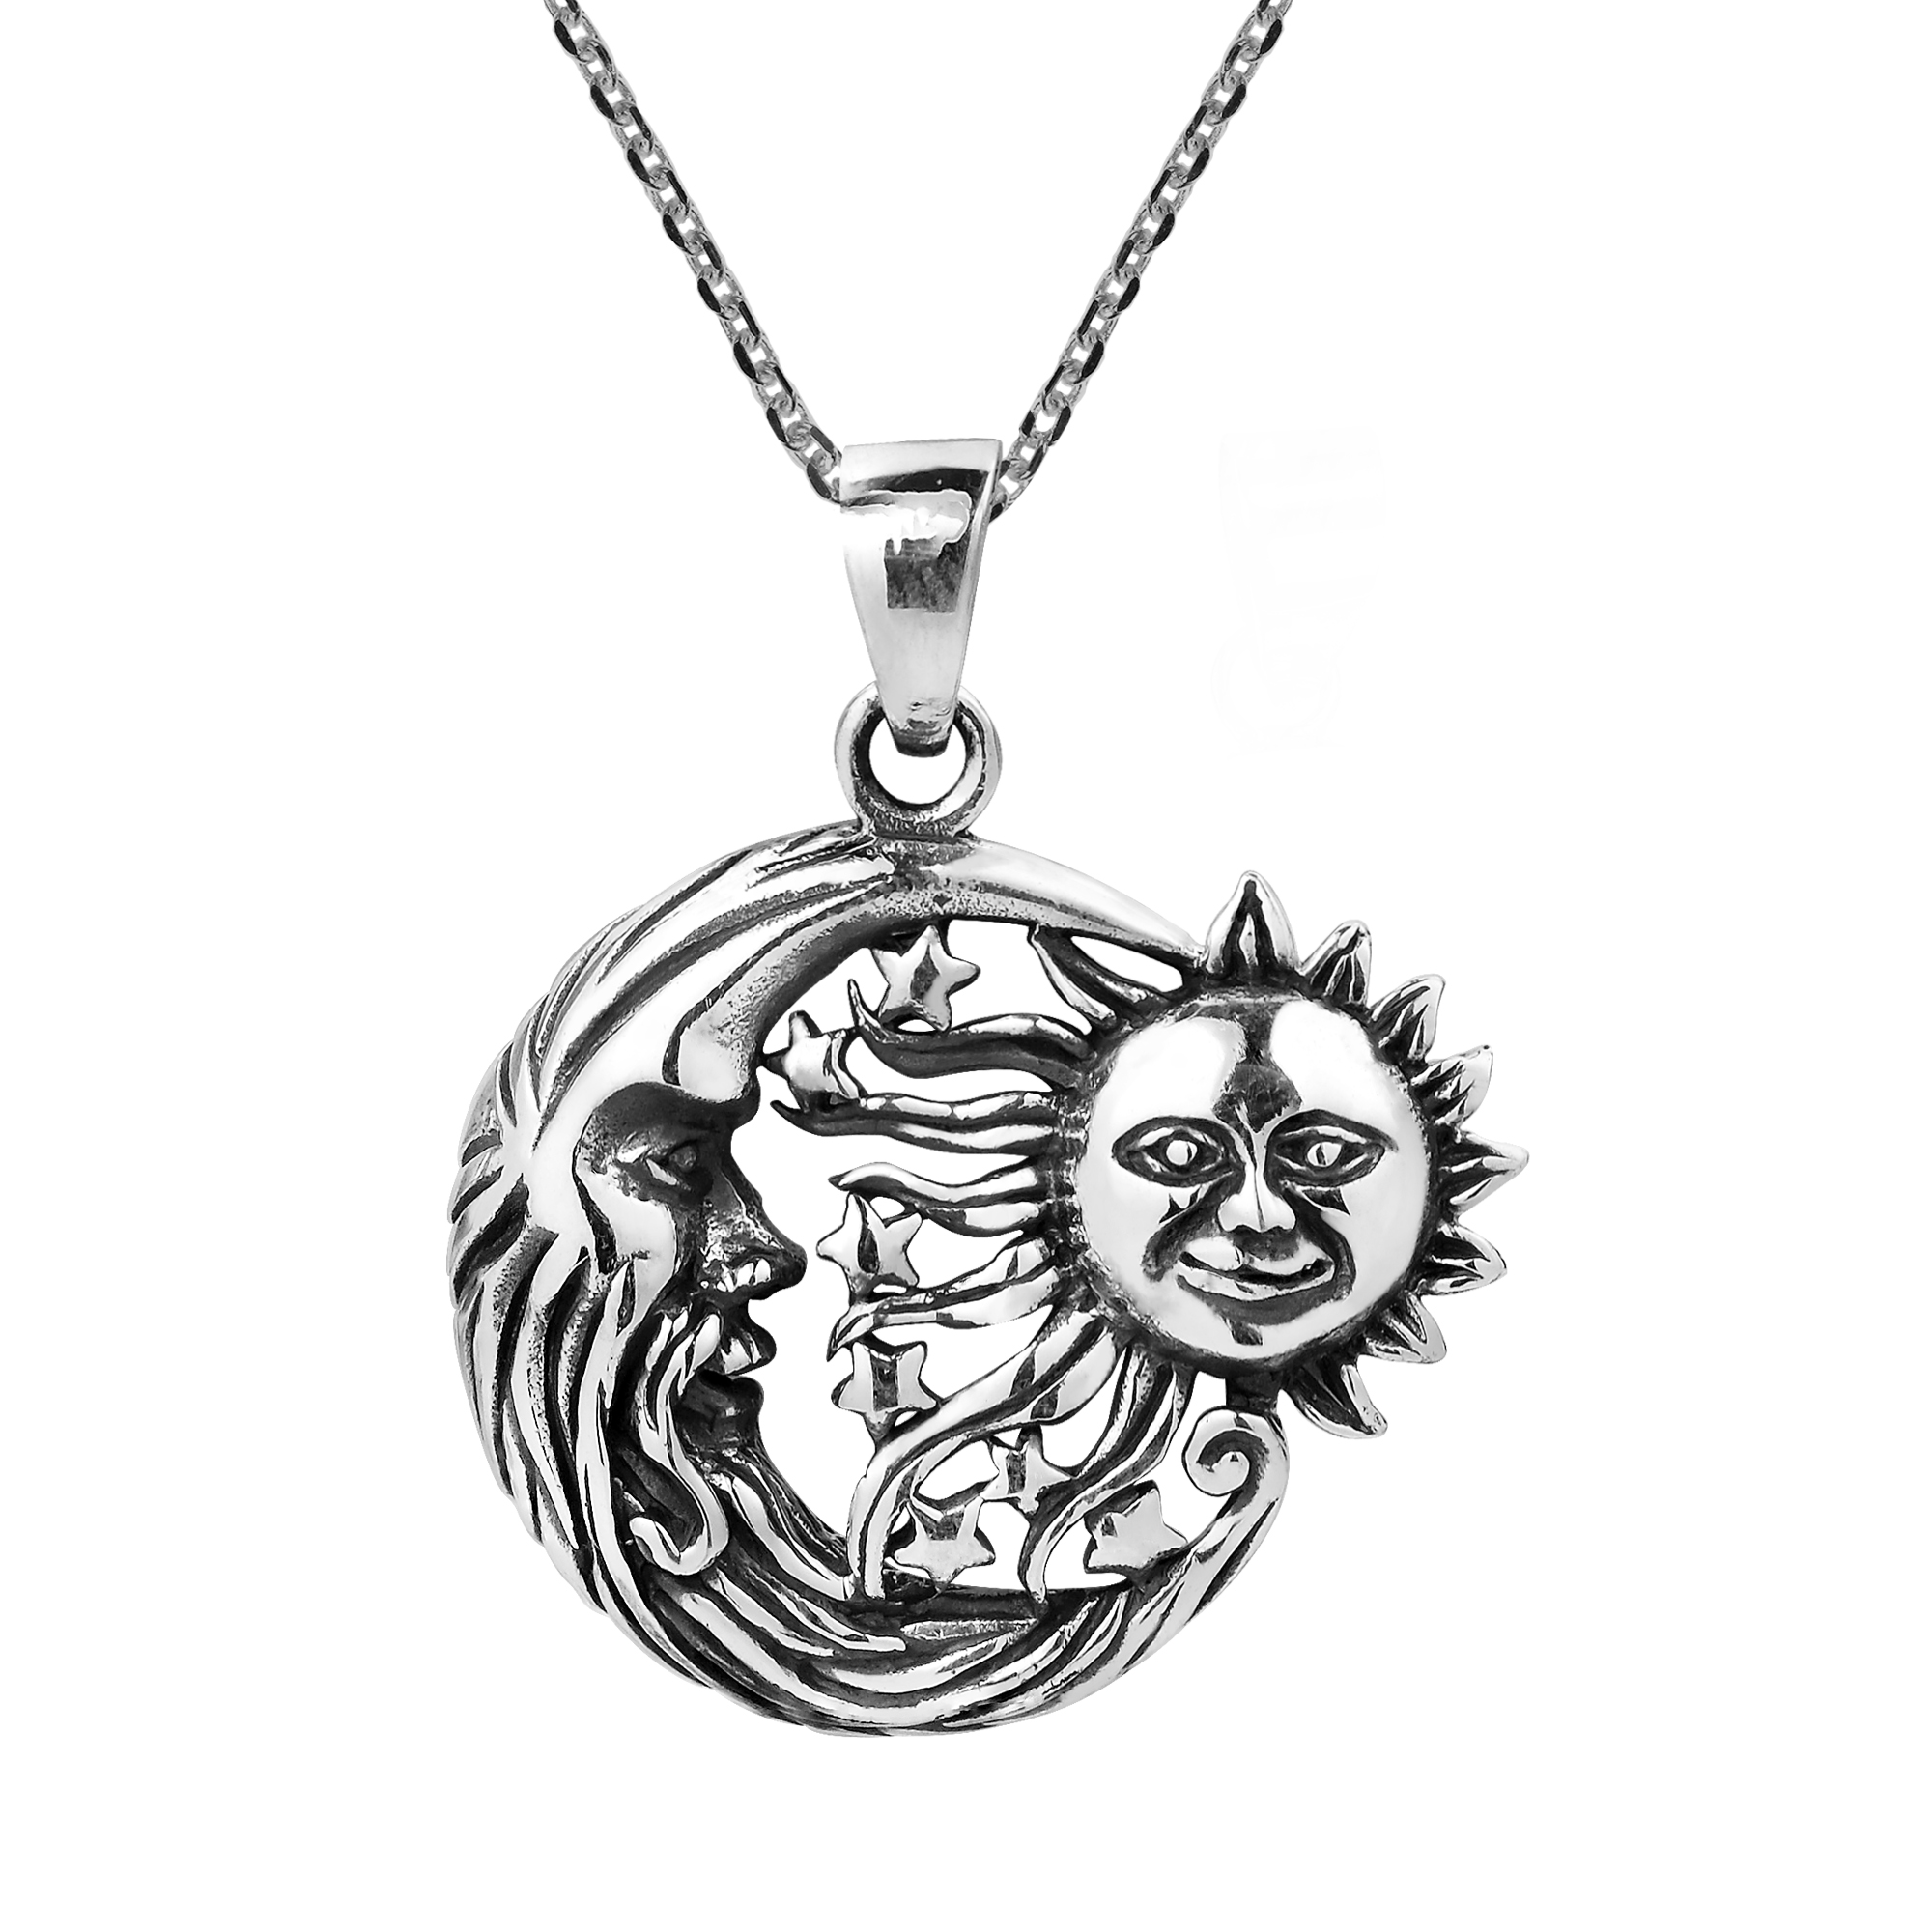 sun necklaces necklace for lovely and ksvhs friendship dainty jewellery moon people